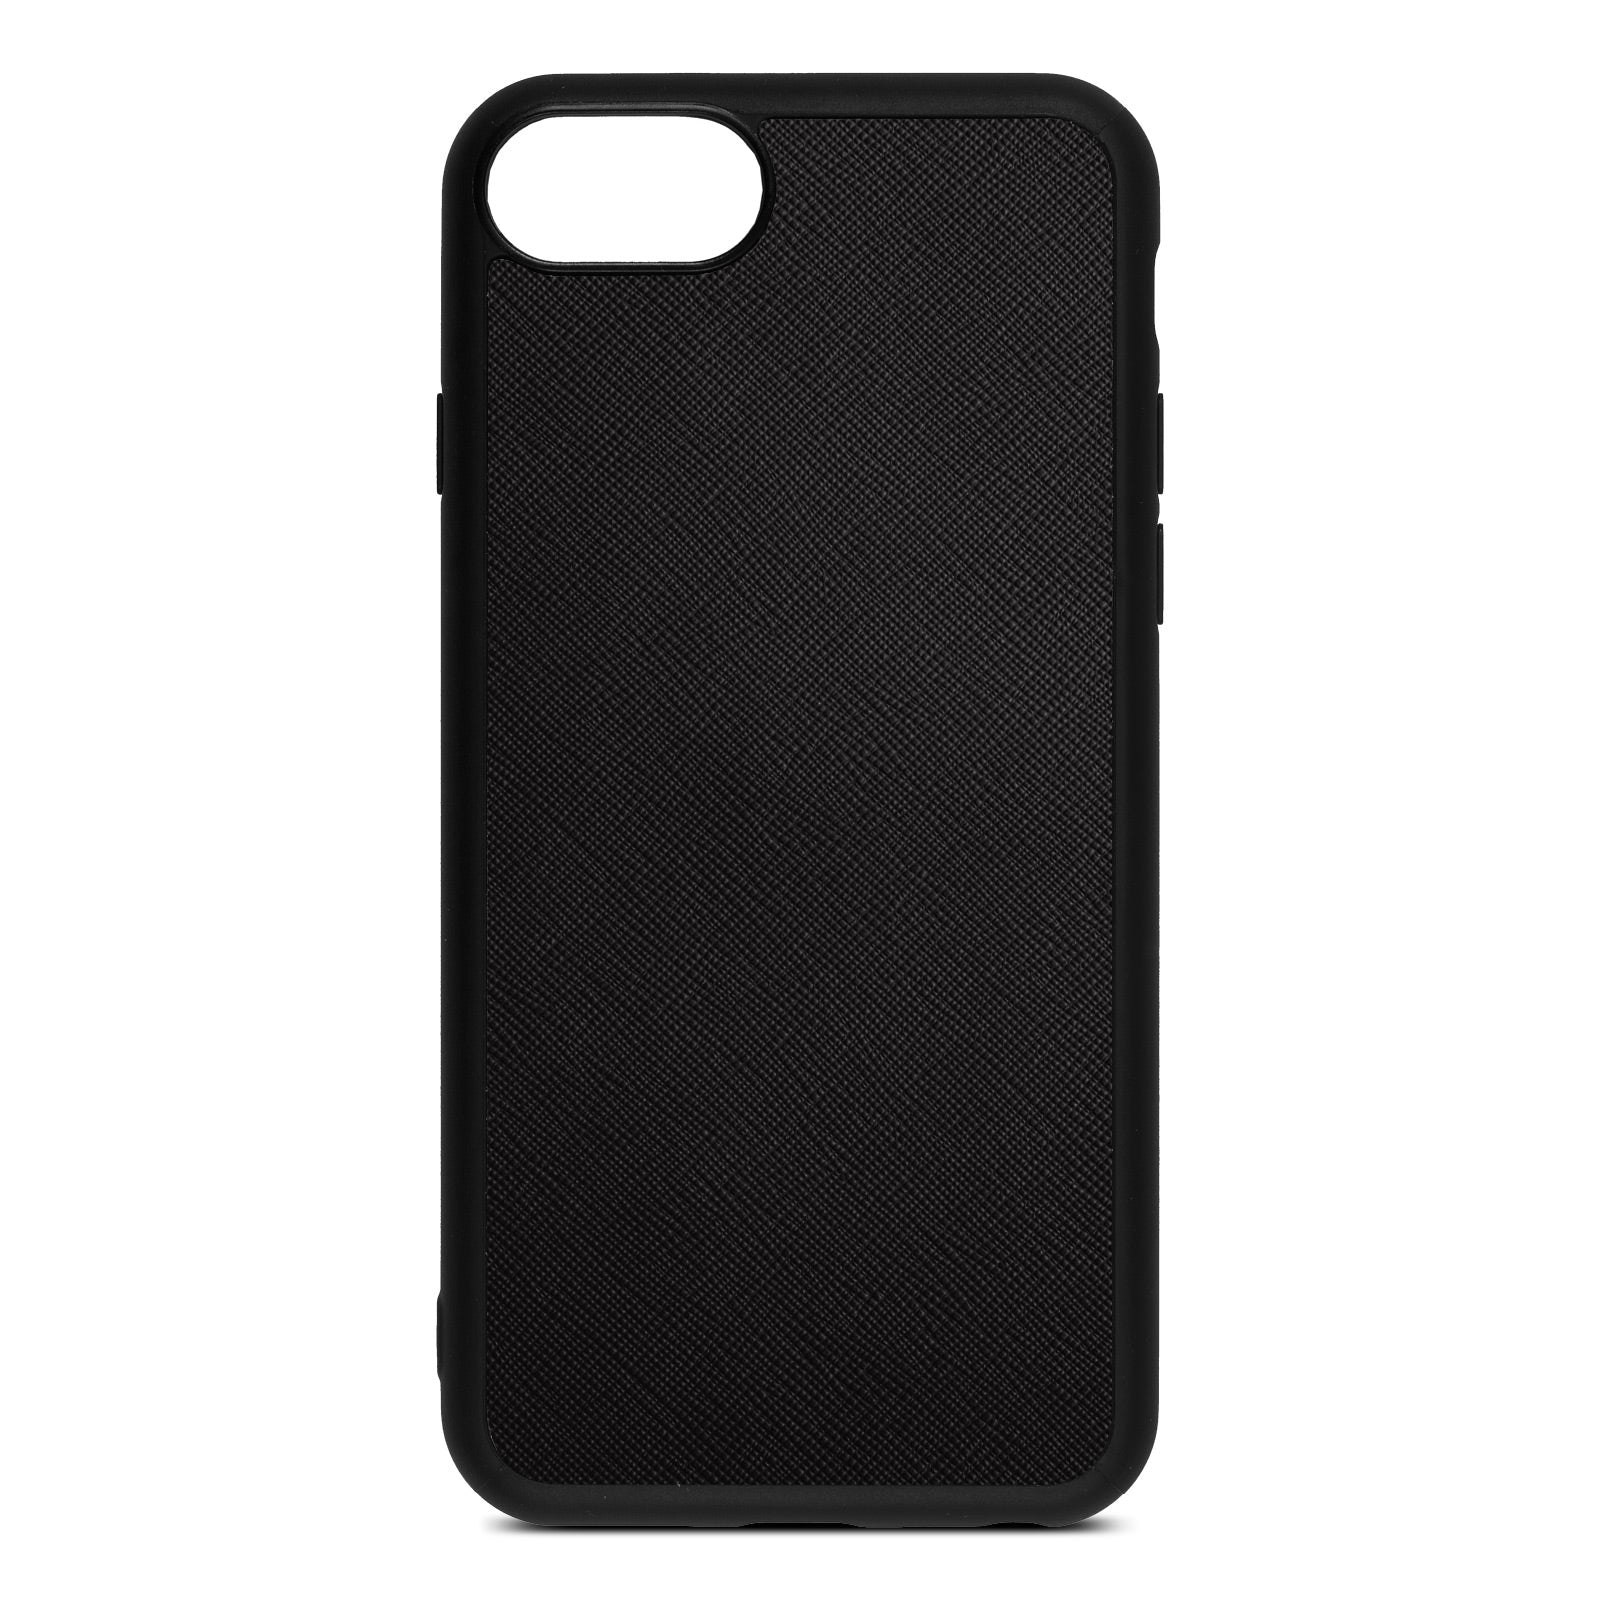 Blank iPhone 8 Drop Shadow Black Leather Case